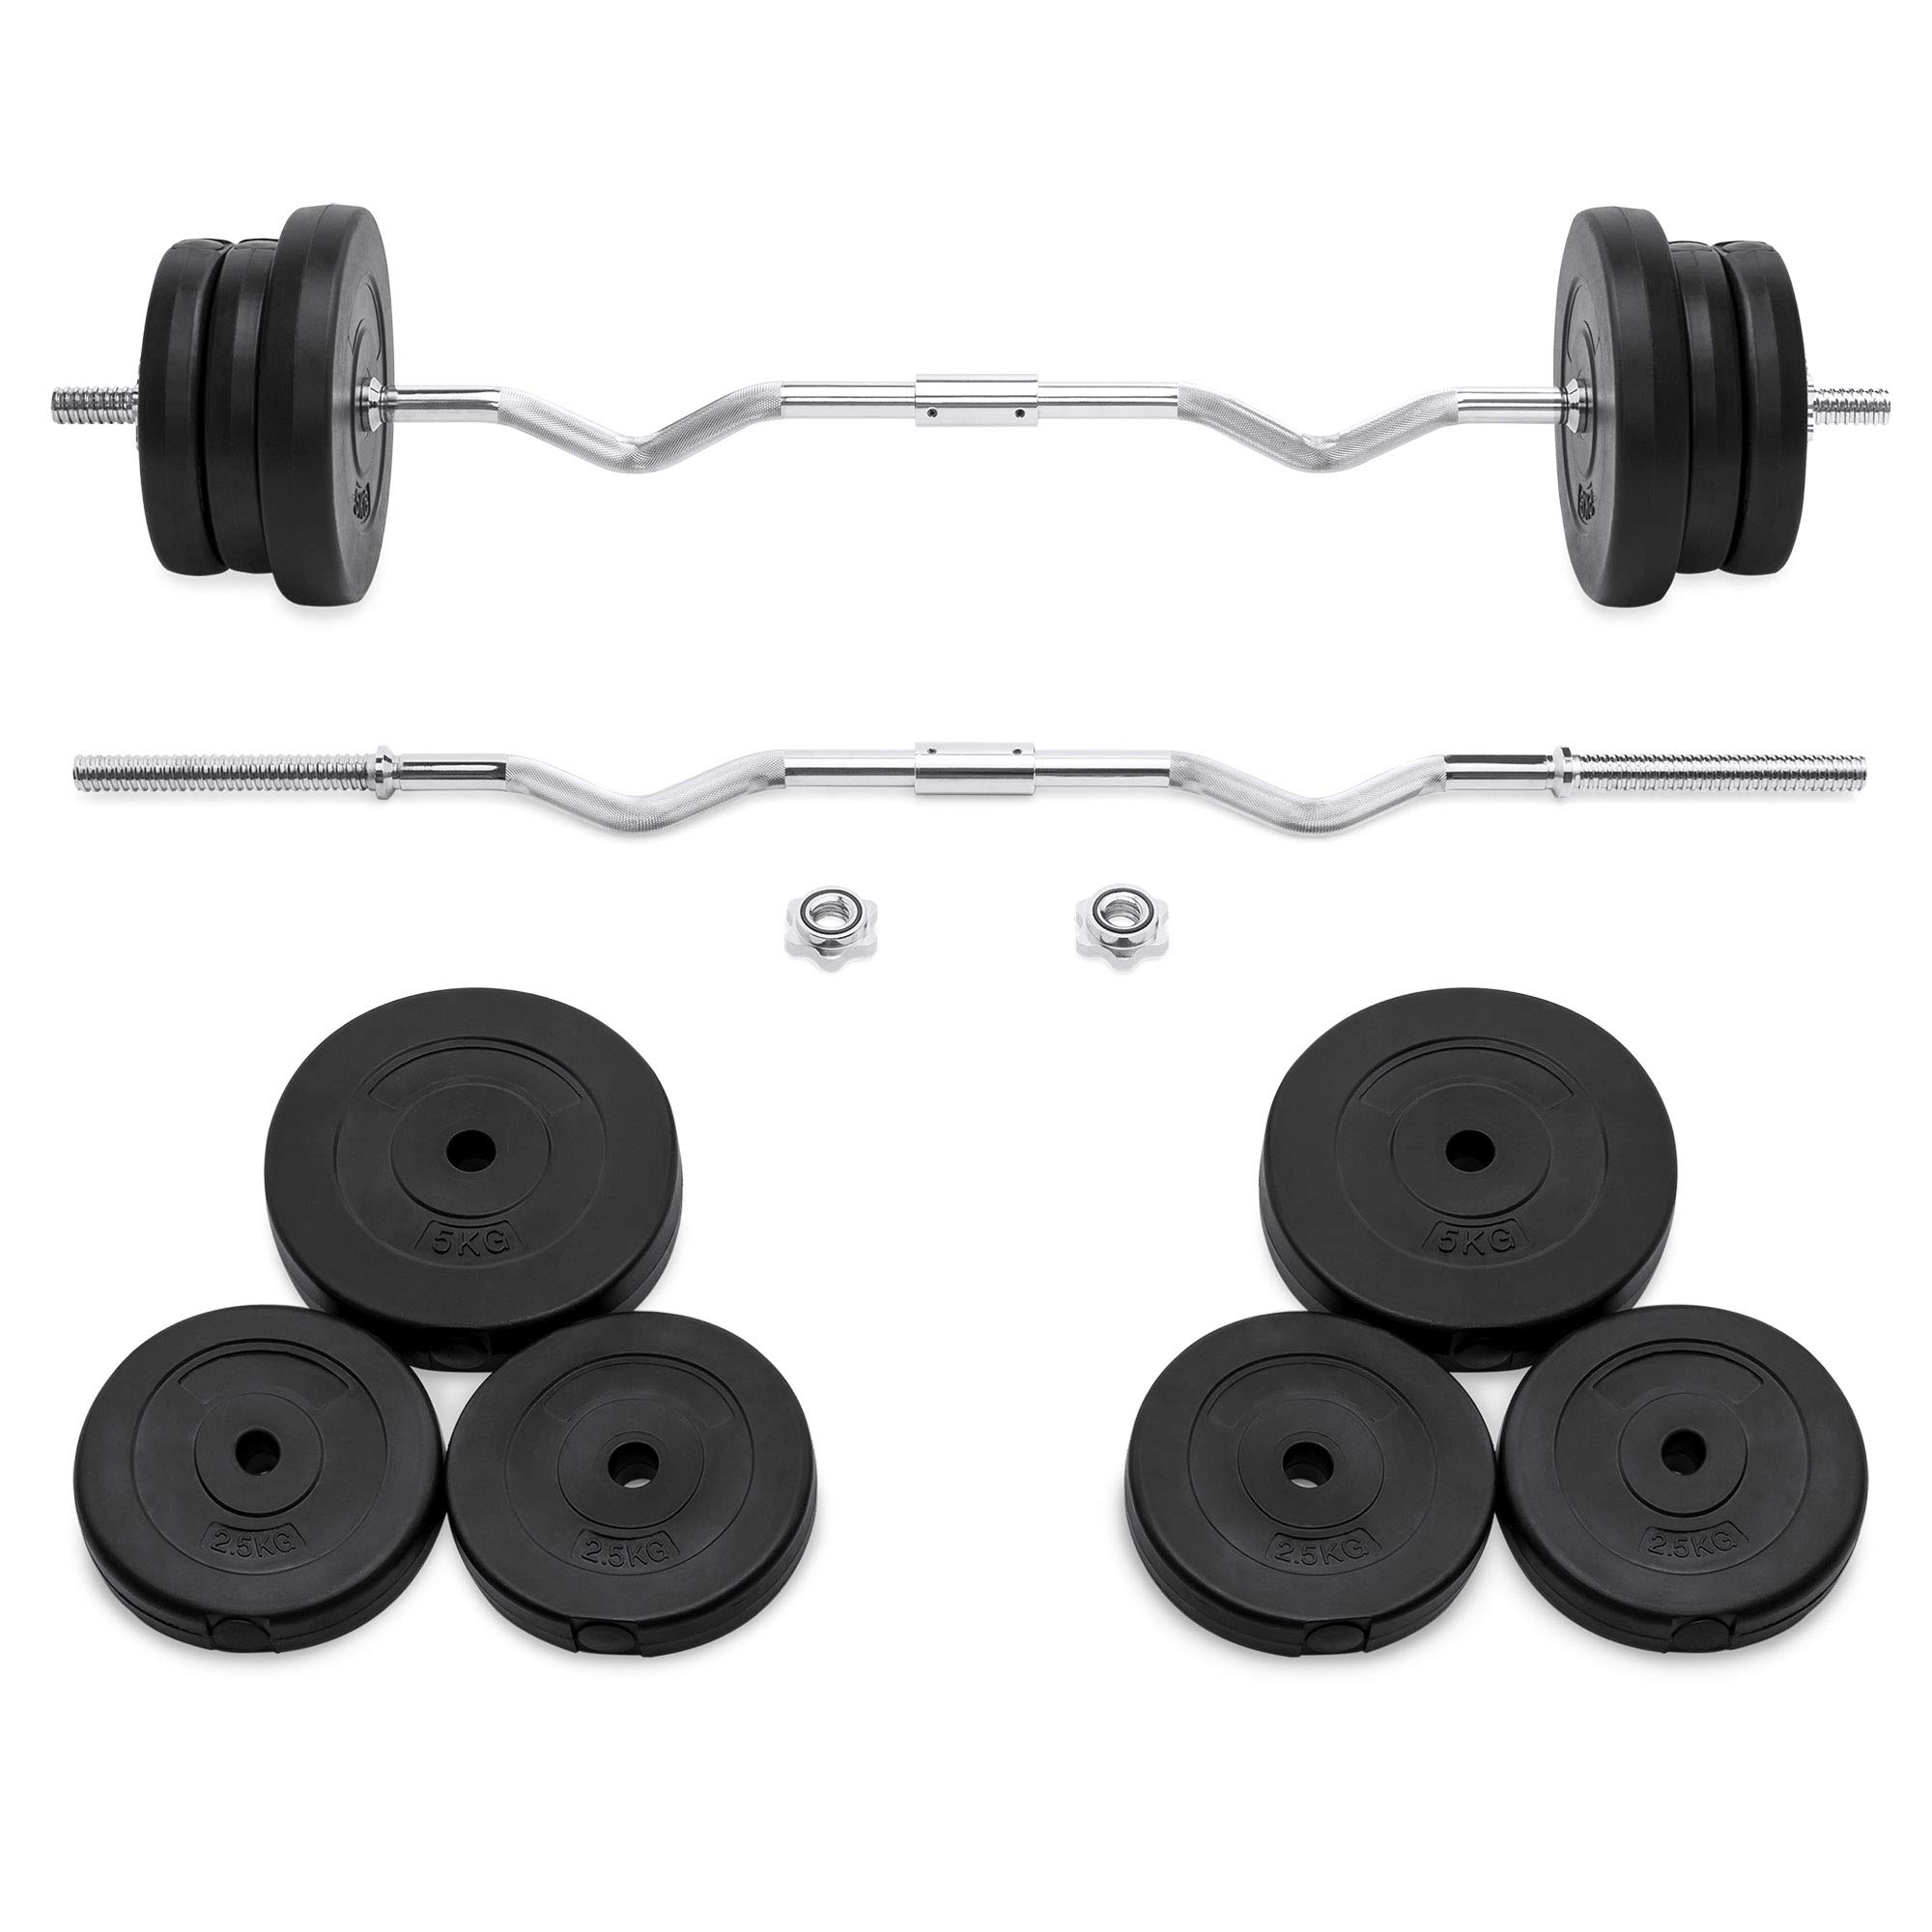 Best Choice Products 55lb 1in EZ Curl Bar Barbell Weight Set w/ 2 Lock Clamp Collars, 6 Plates - Silver/Black